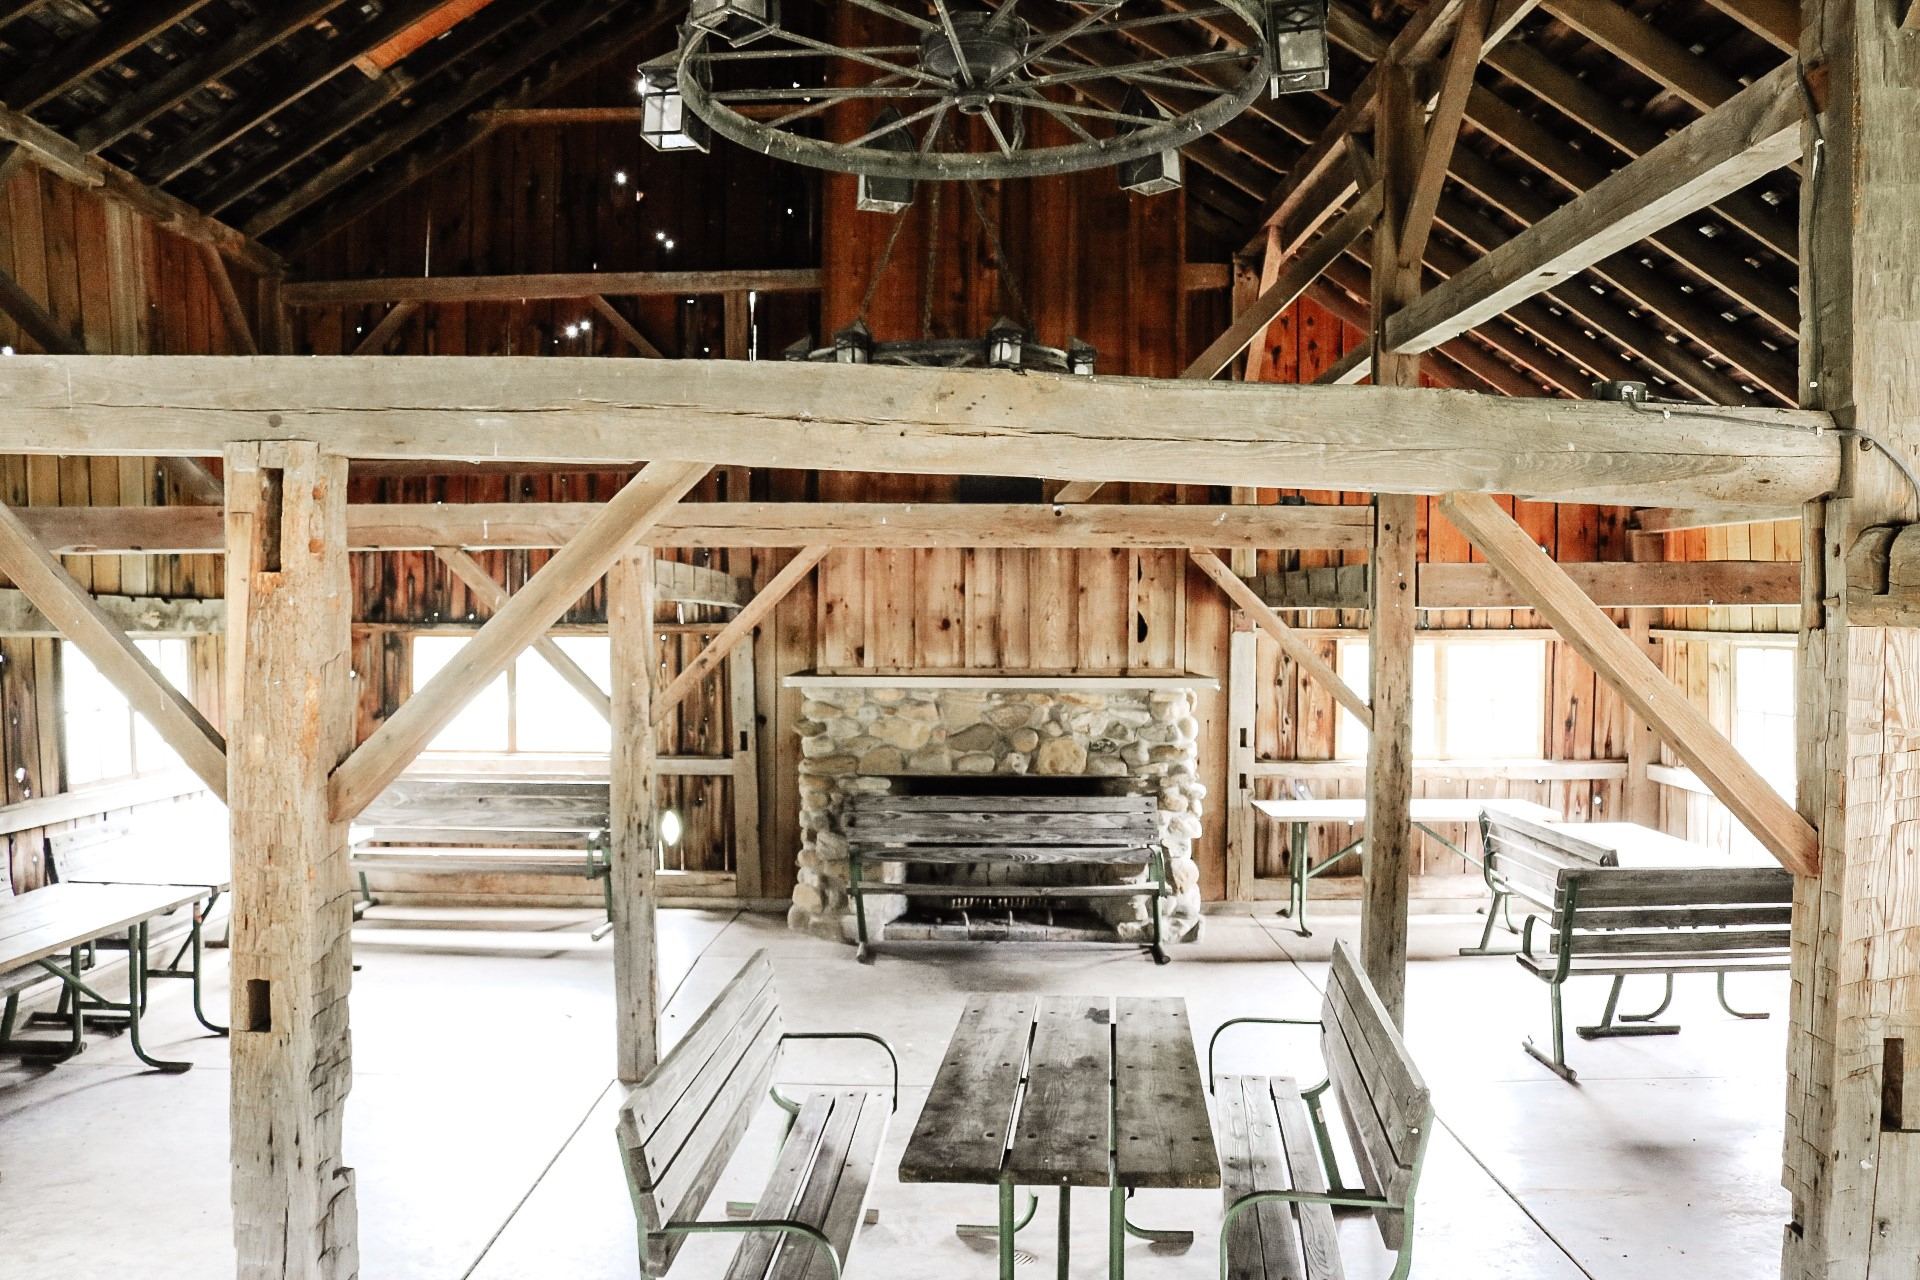 Audubon Barn inside